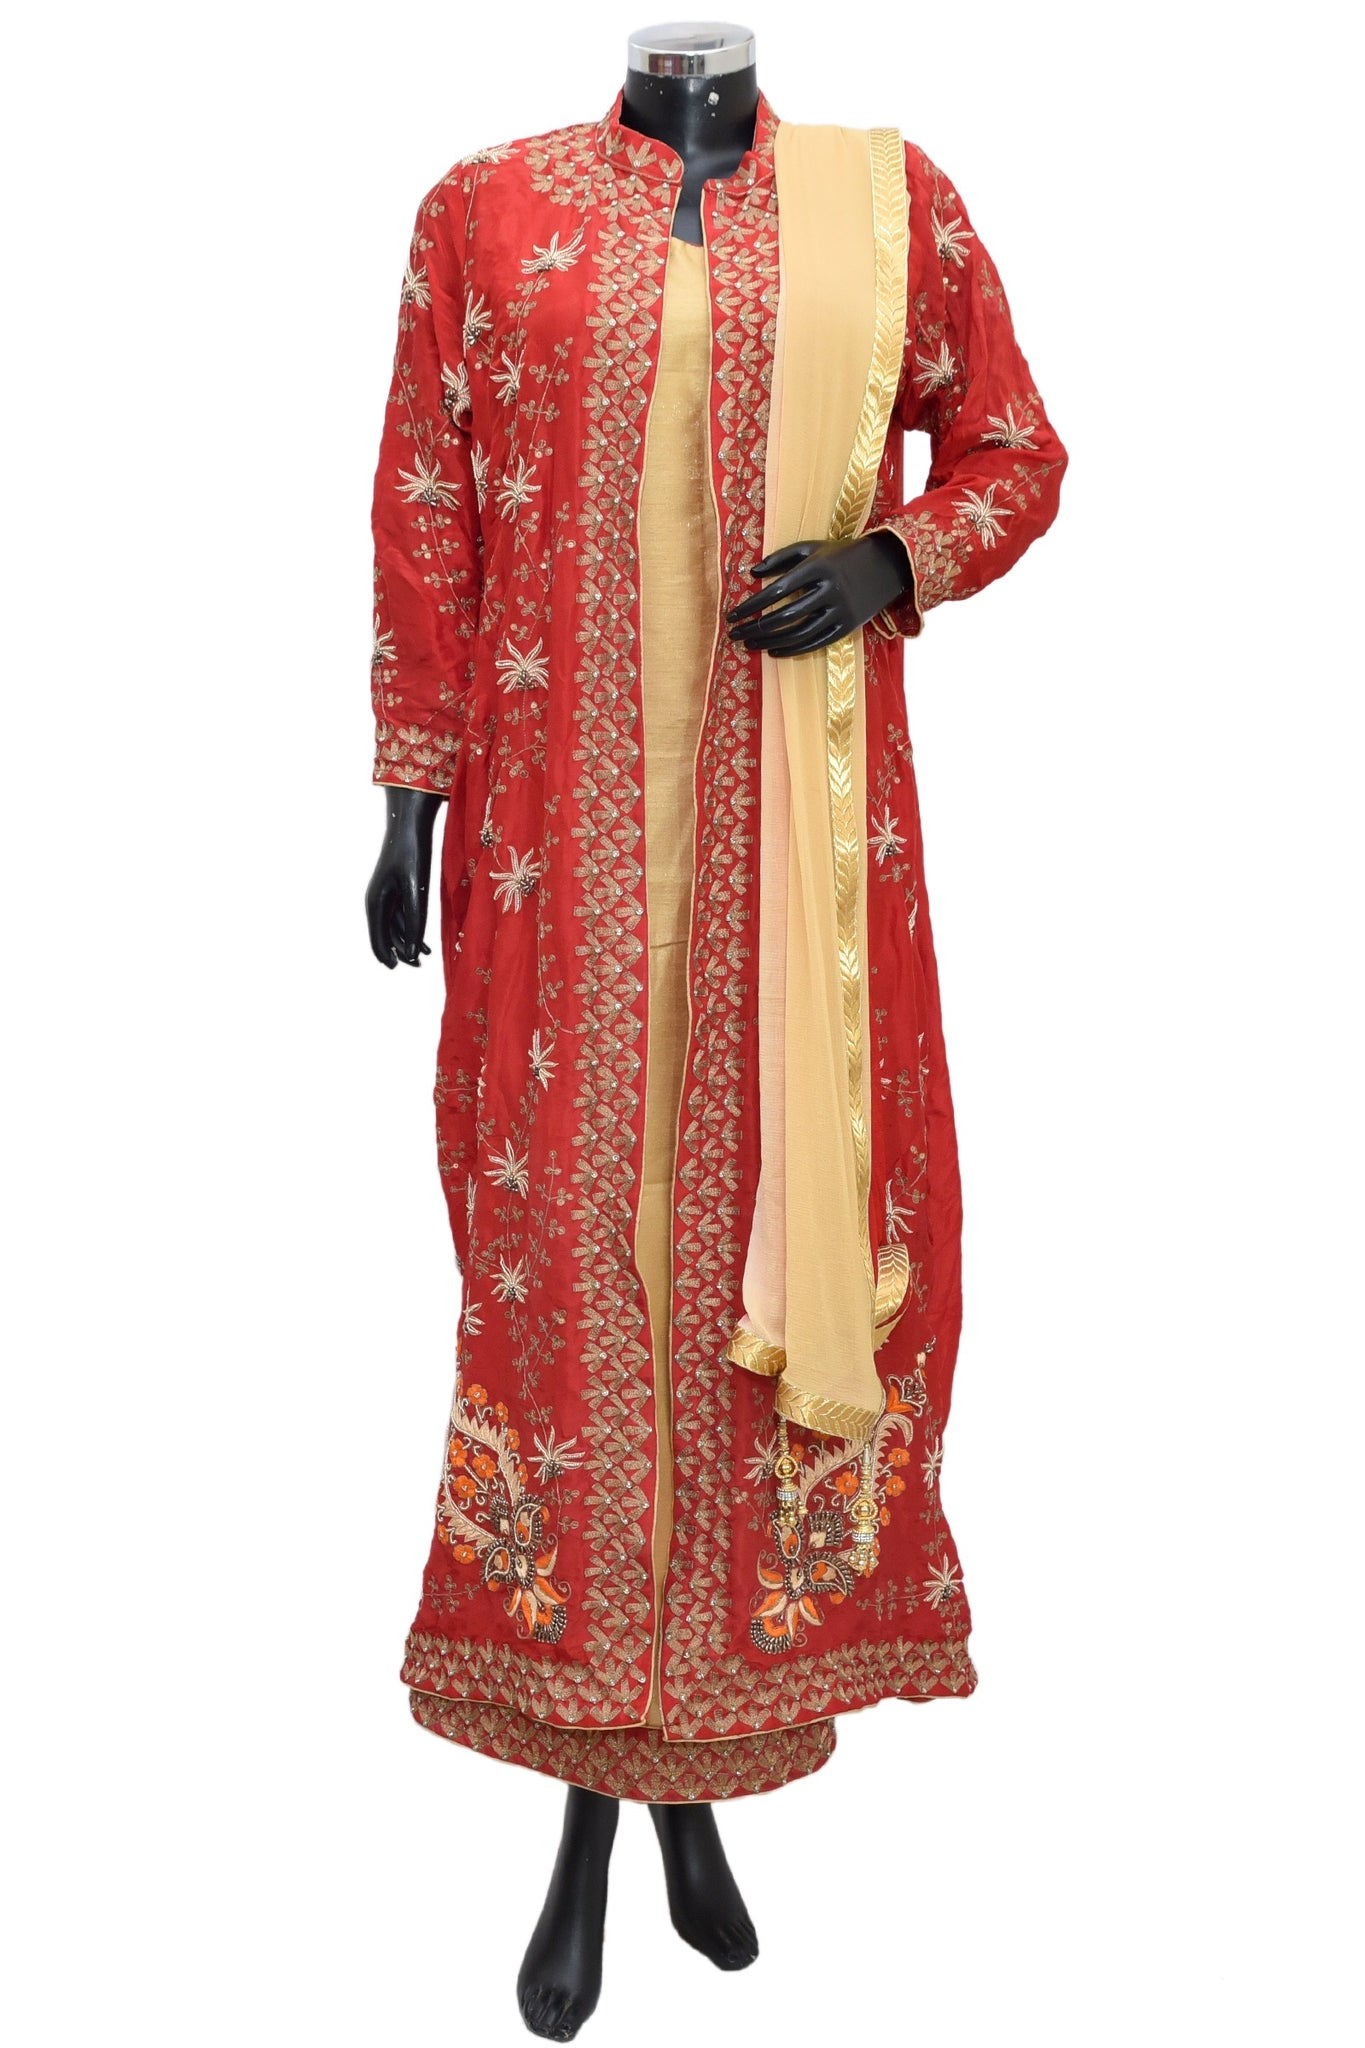 Embroidered long jacket dress #fdn1252-791